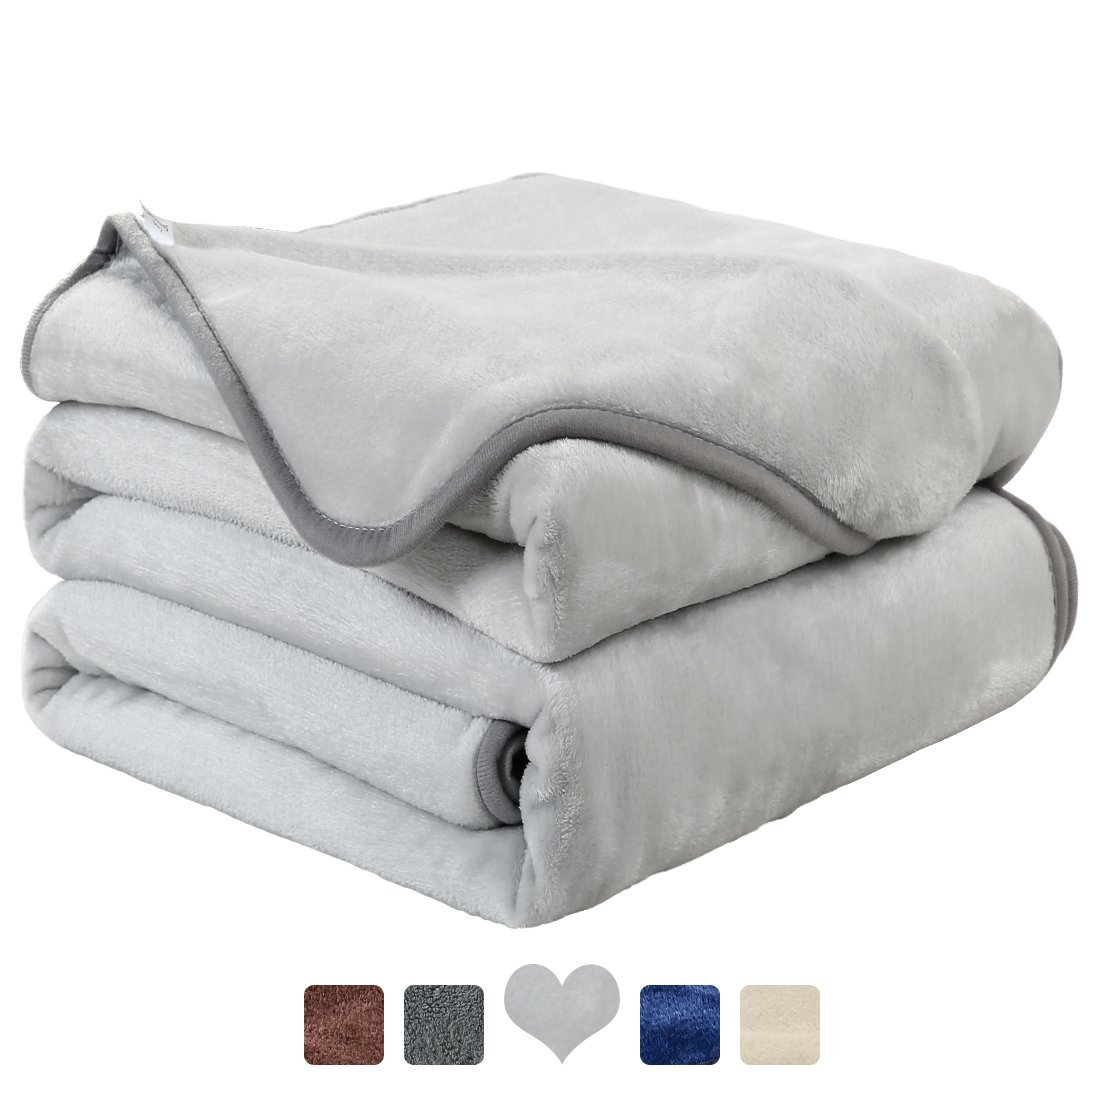 MAEVIS Fleece Luxury Blanket Super Soft Cozy Lightweight Plush Fur Warm All Season Throw for Bed and Couch (Queen, Silver Grey)